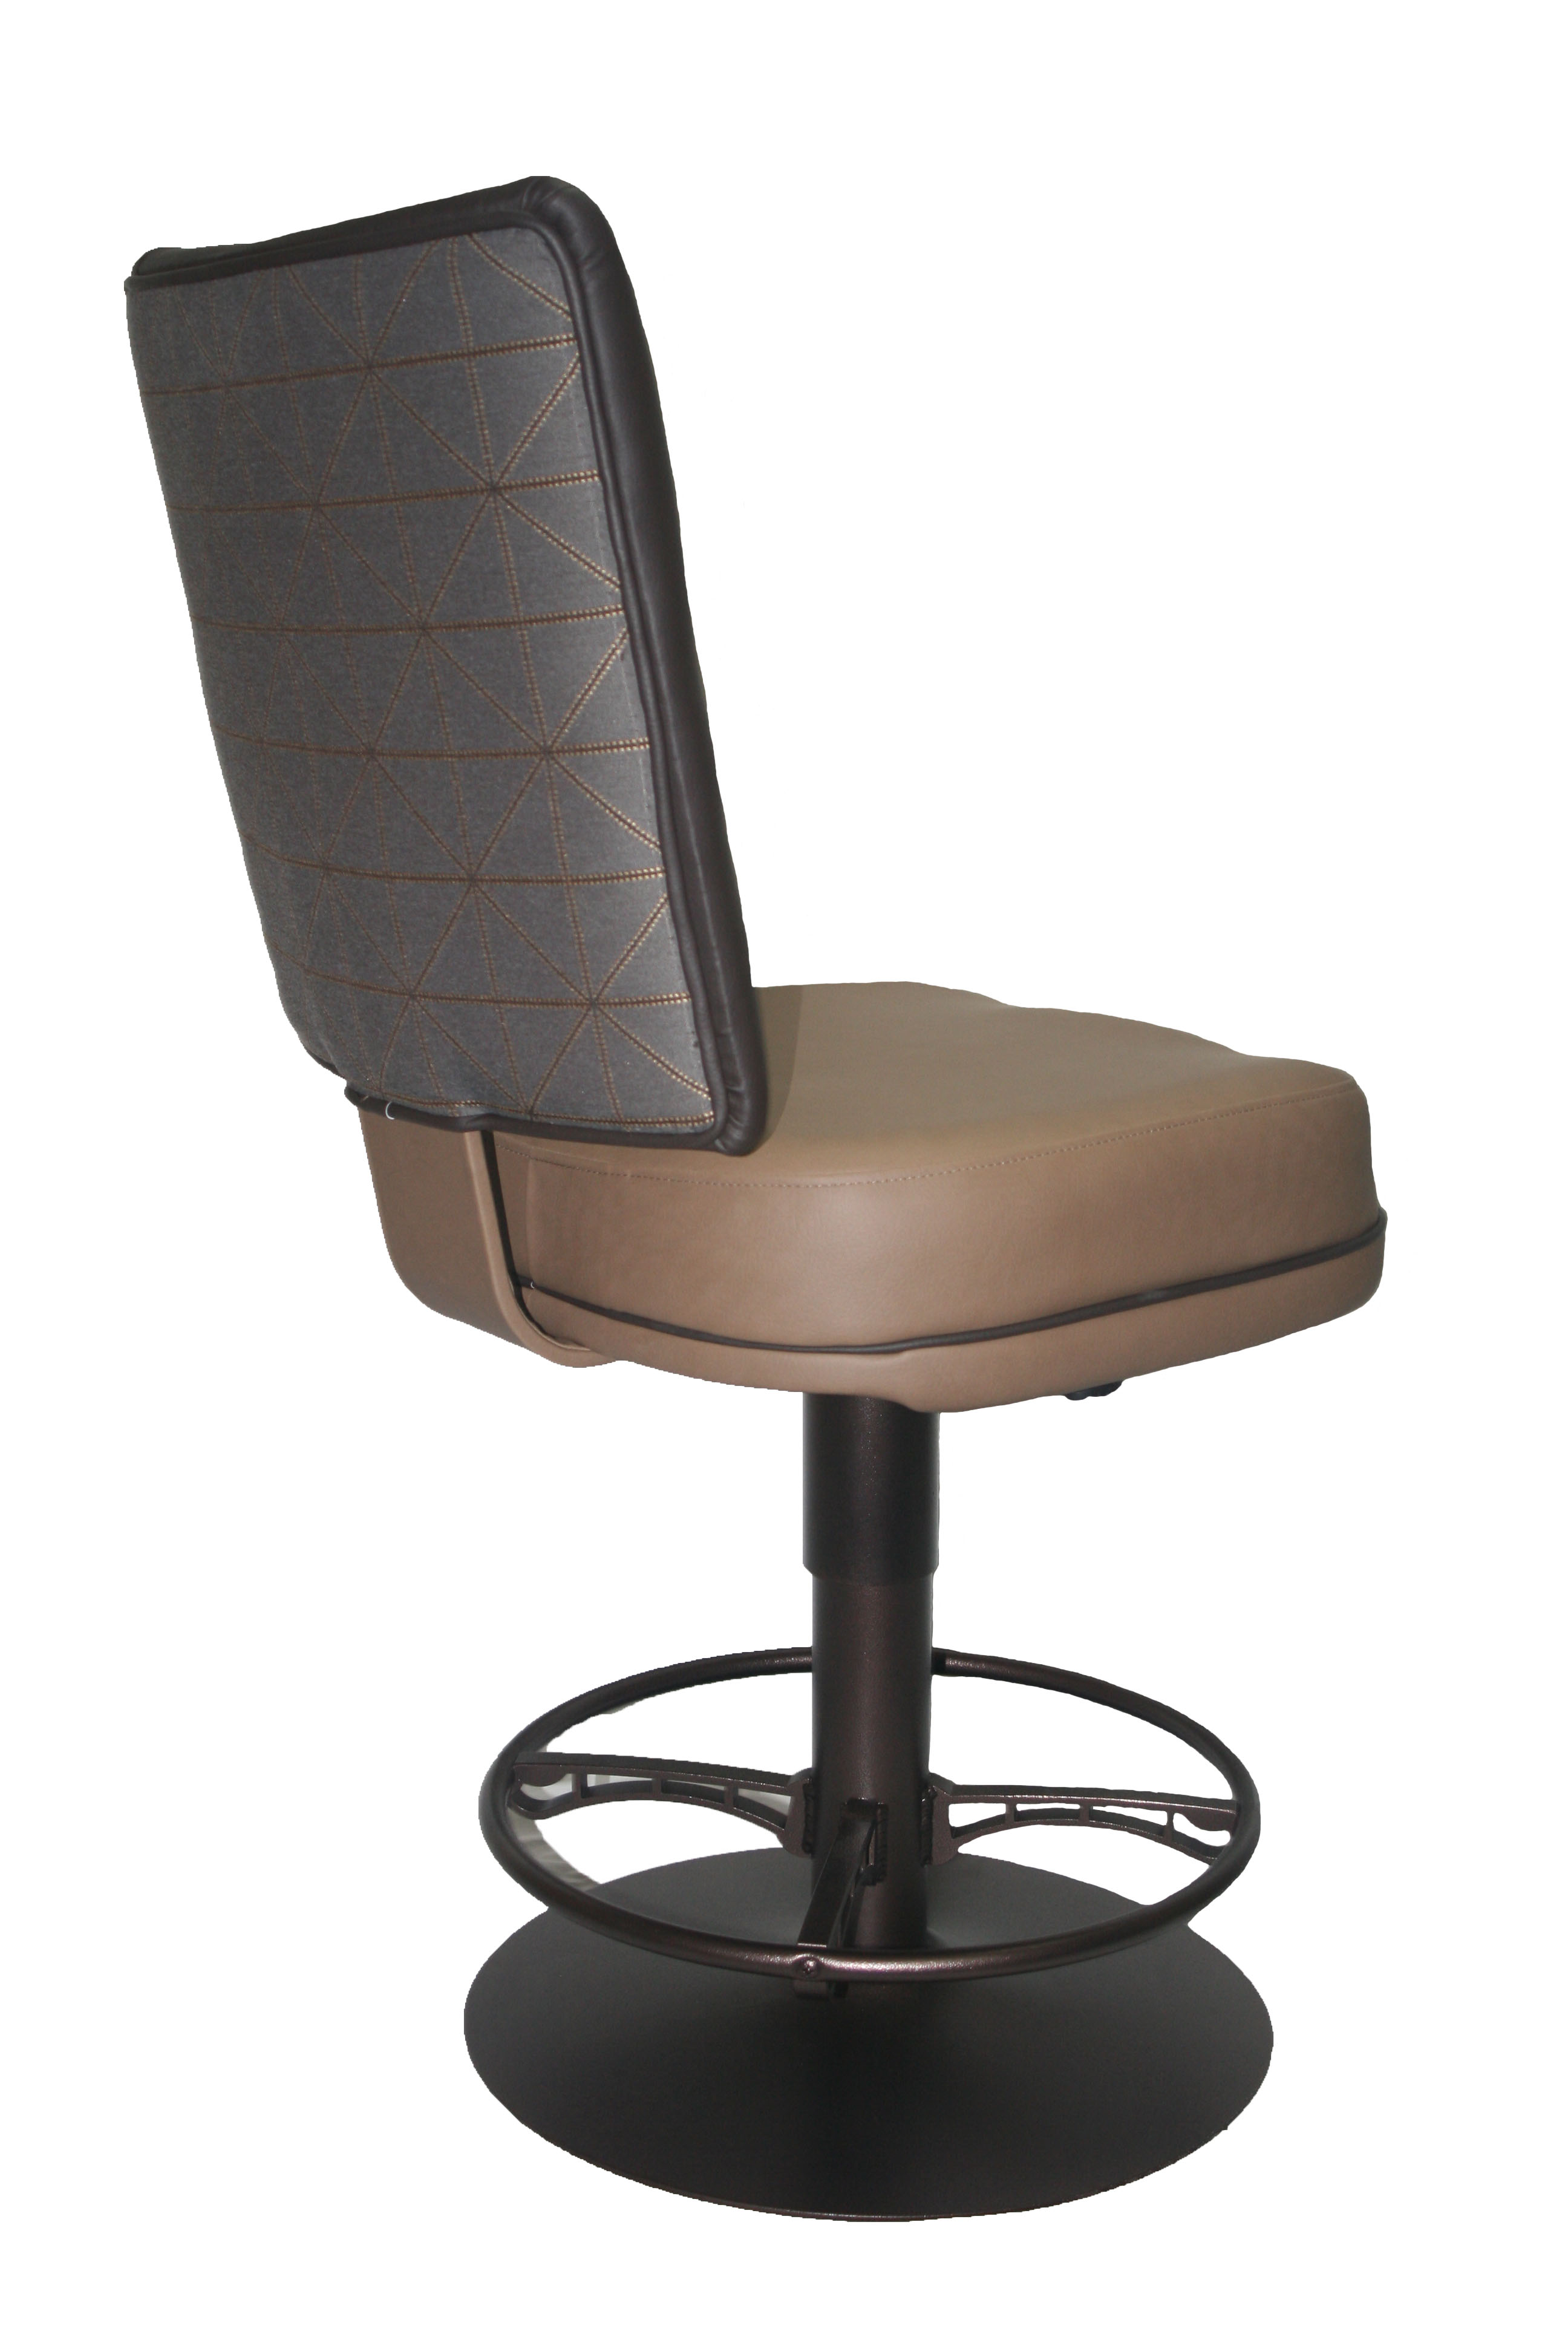 New chair designs pinnacle furnishings casino seating for Chair design 2000